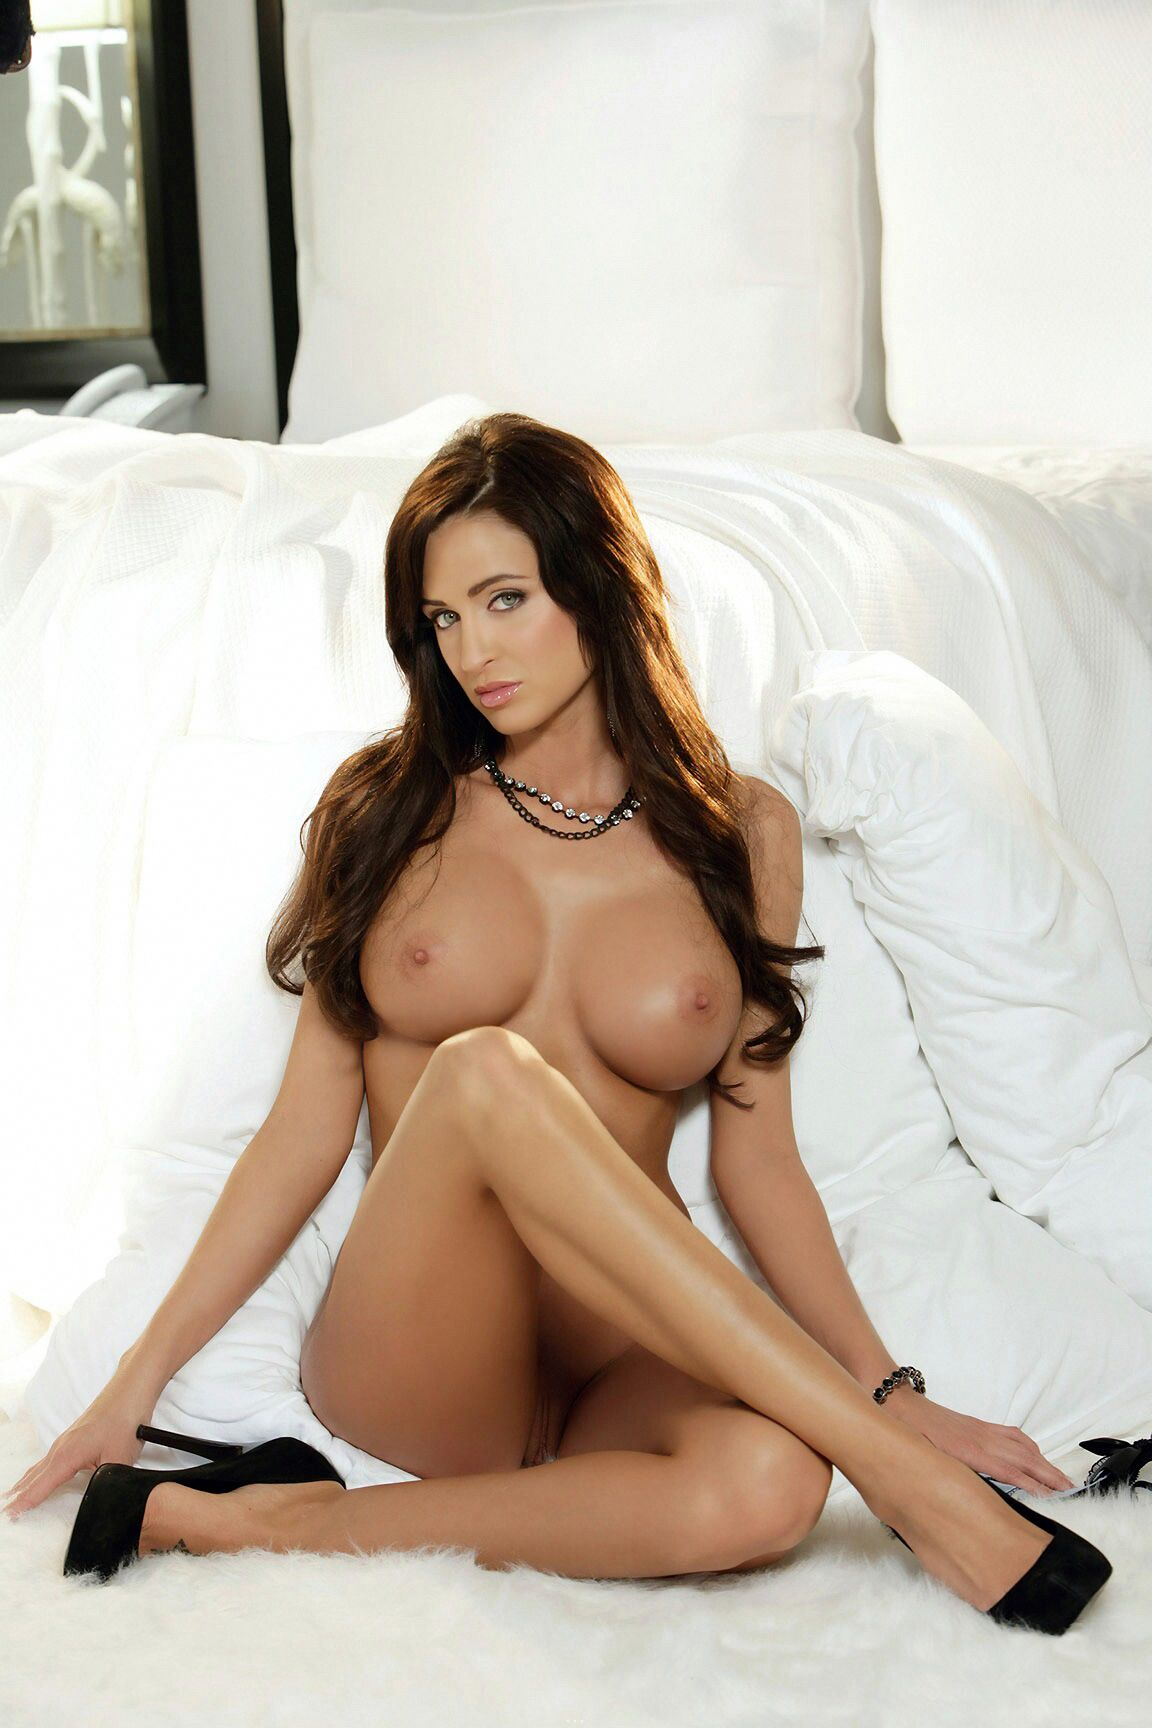 Hot transexual girl pictures